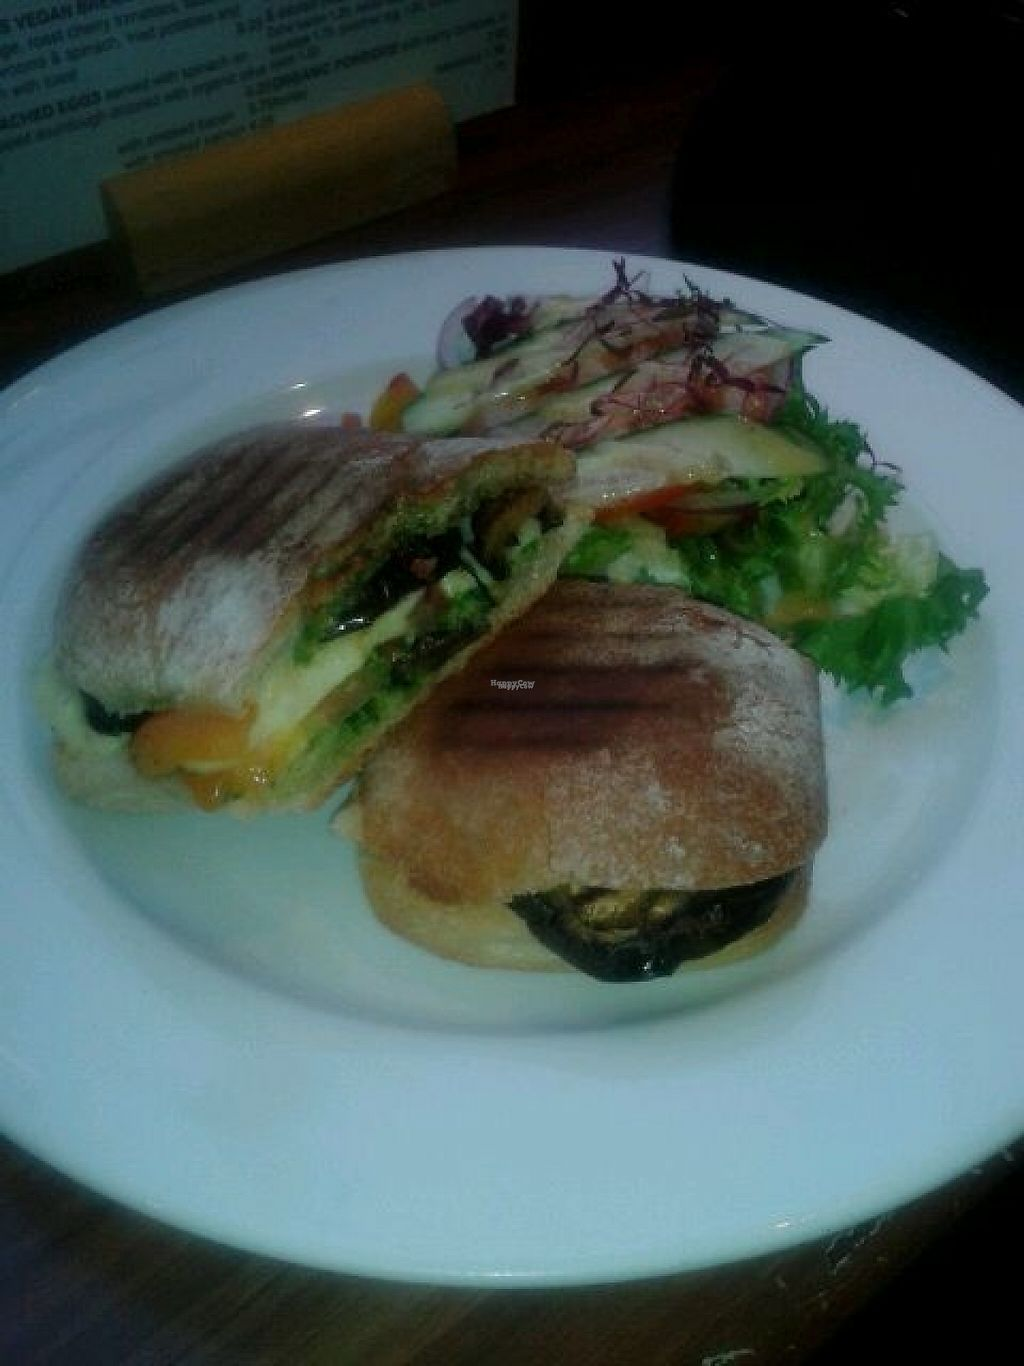 """Photo of Roots  Fruits and Flowers - Great Western Rd  by <a href=""""/members/profile/deadpledge"""">deadpledge</a> <br/>Vegan aubergine, cheese and roasted veg panini <br/> February 24, 2017  - <a href='/contact/abuse/image/28899/229922'>Report</a>"""